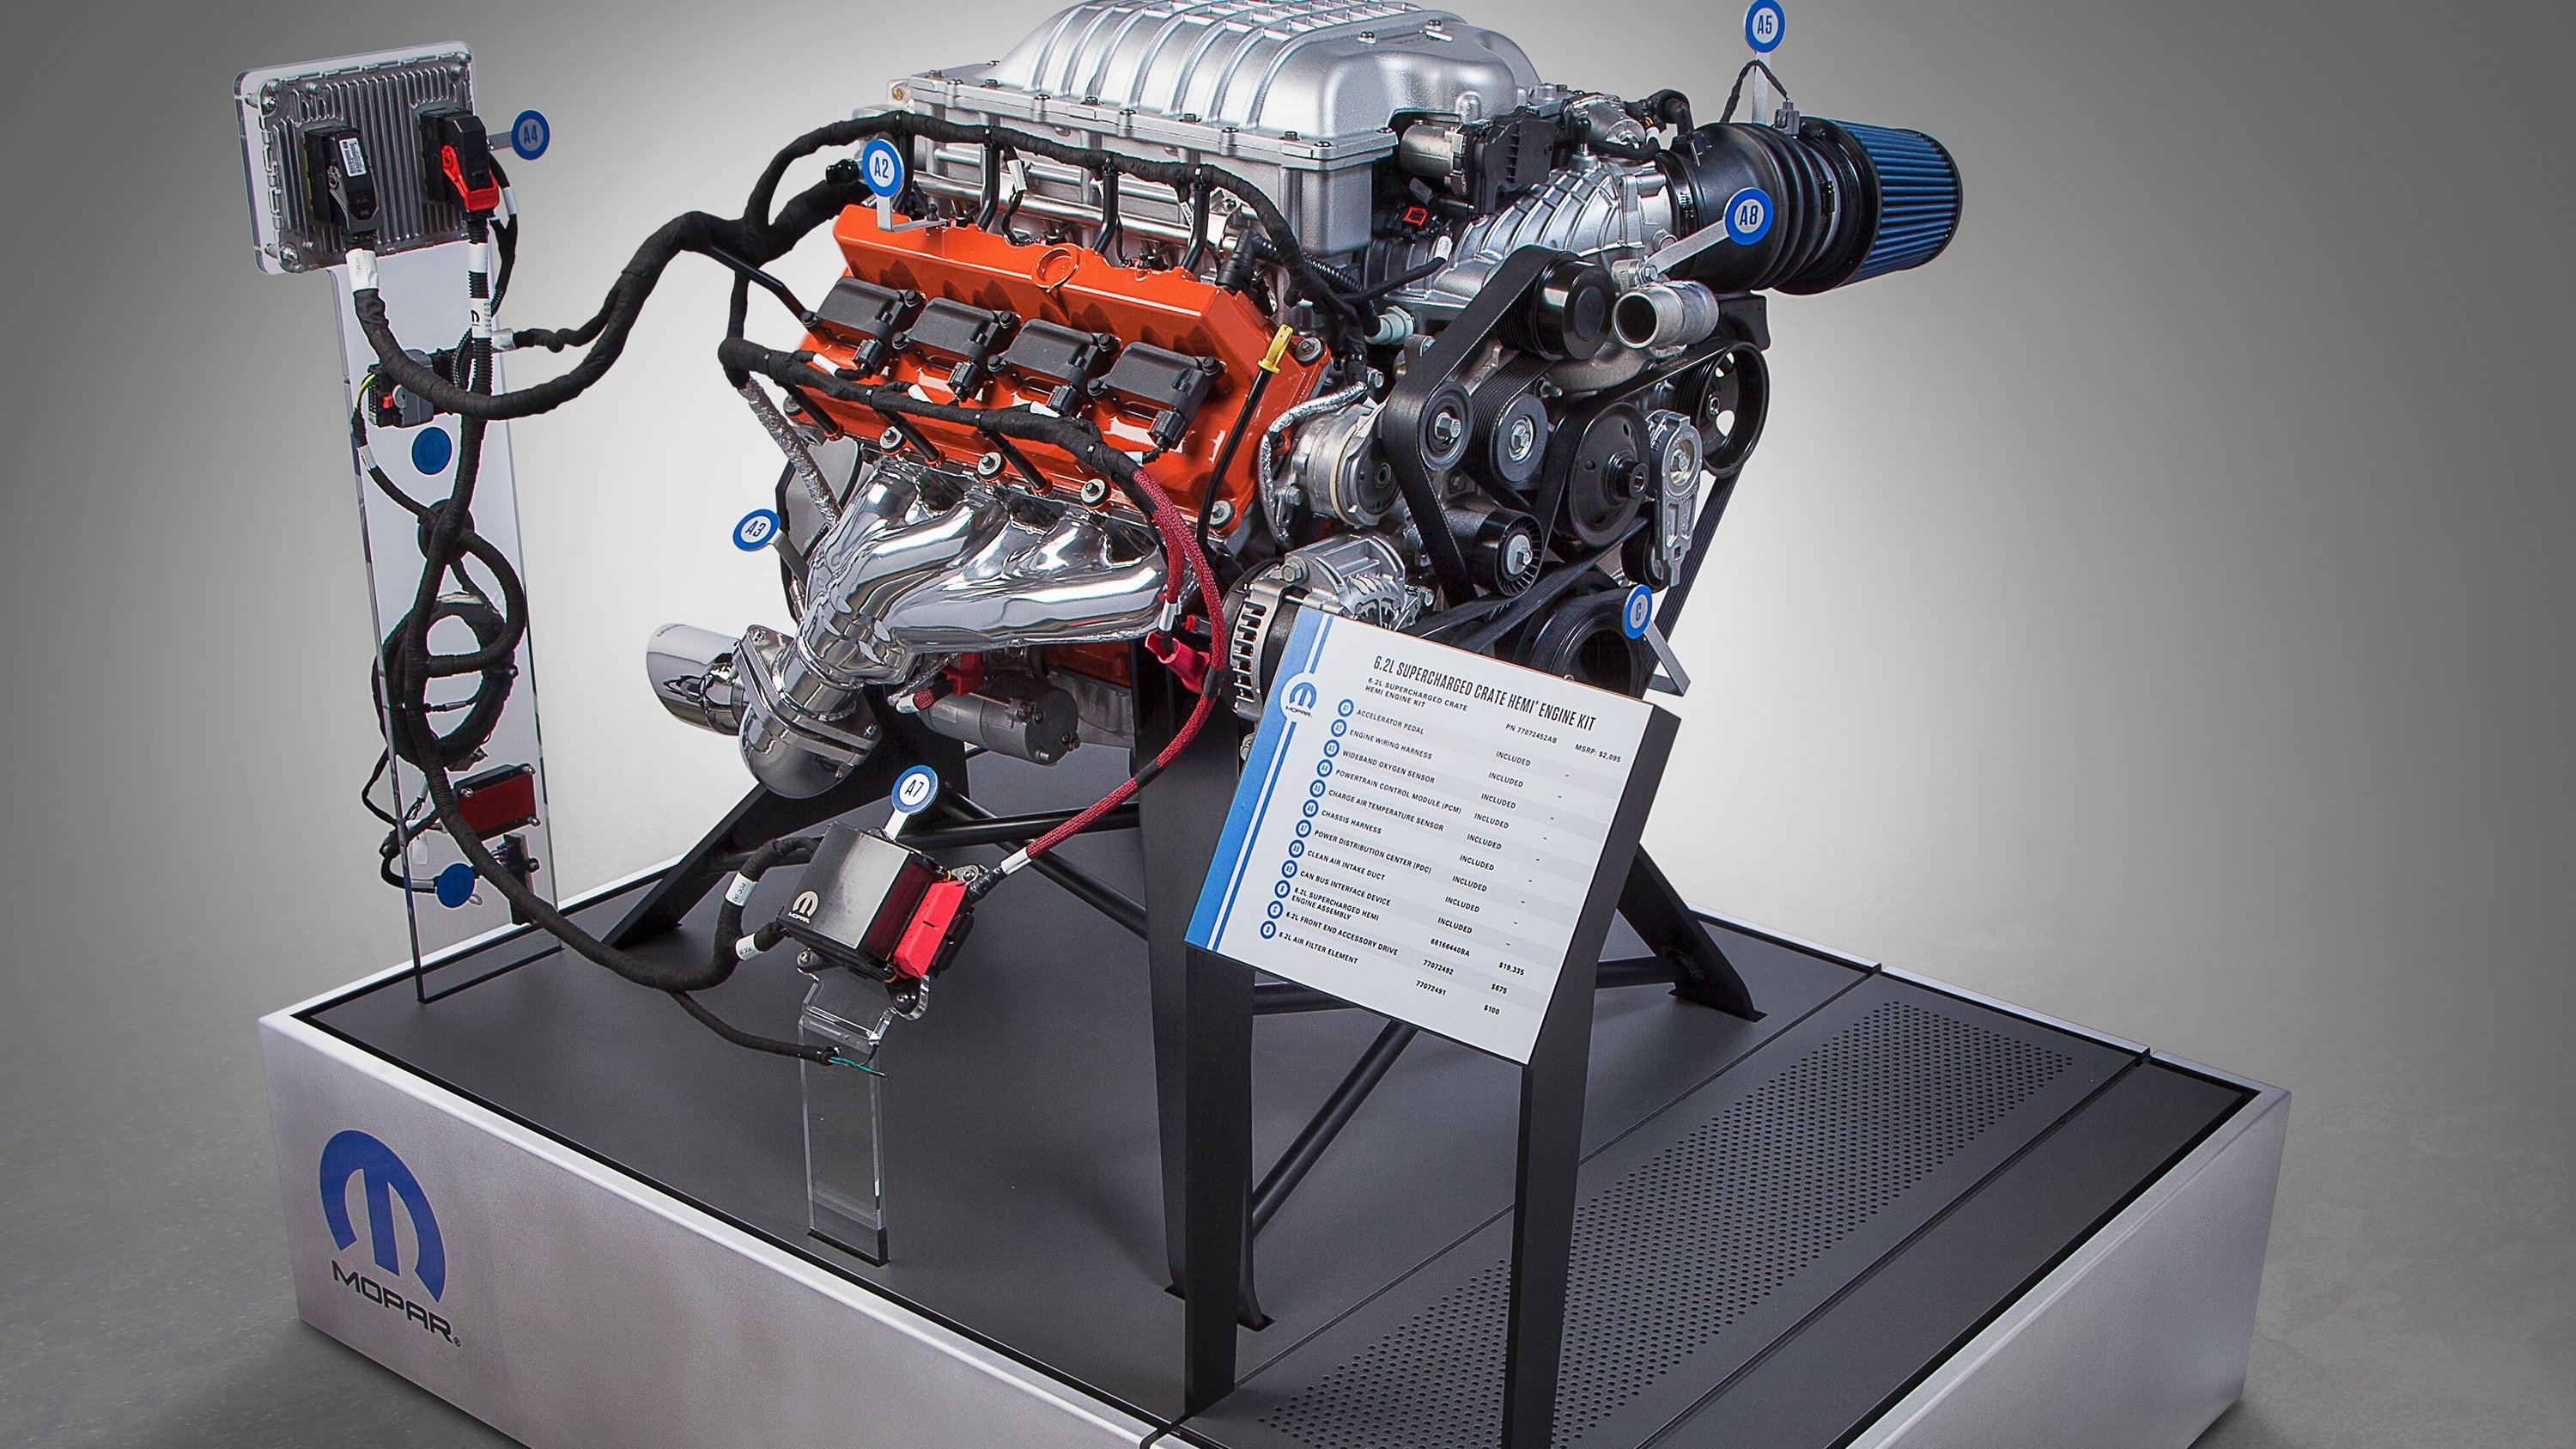 The 62 Liter Hellcat V 8 Is Finally Available As A Crate Engine Chrysler Automotive Wiring Harness Chryslers Famed Parts Division Mopar Officially Offering Mighty Hemi Anyone Can Order